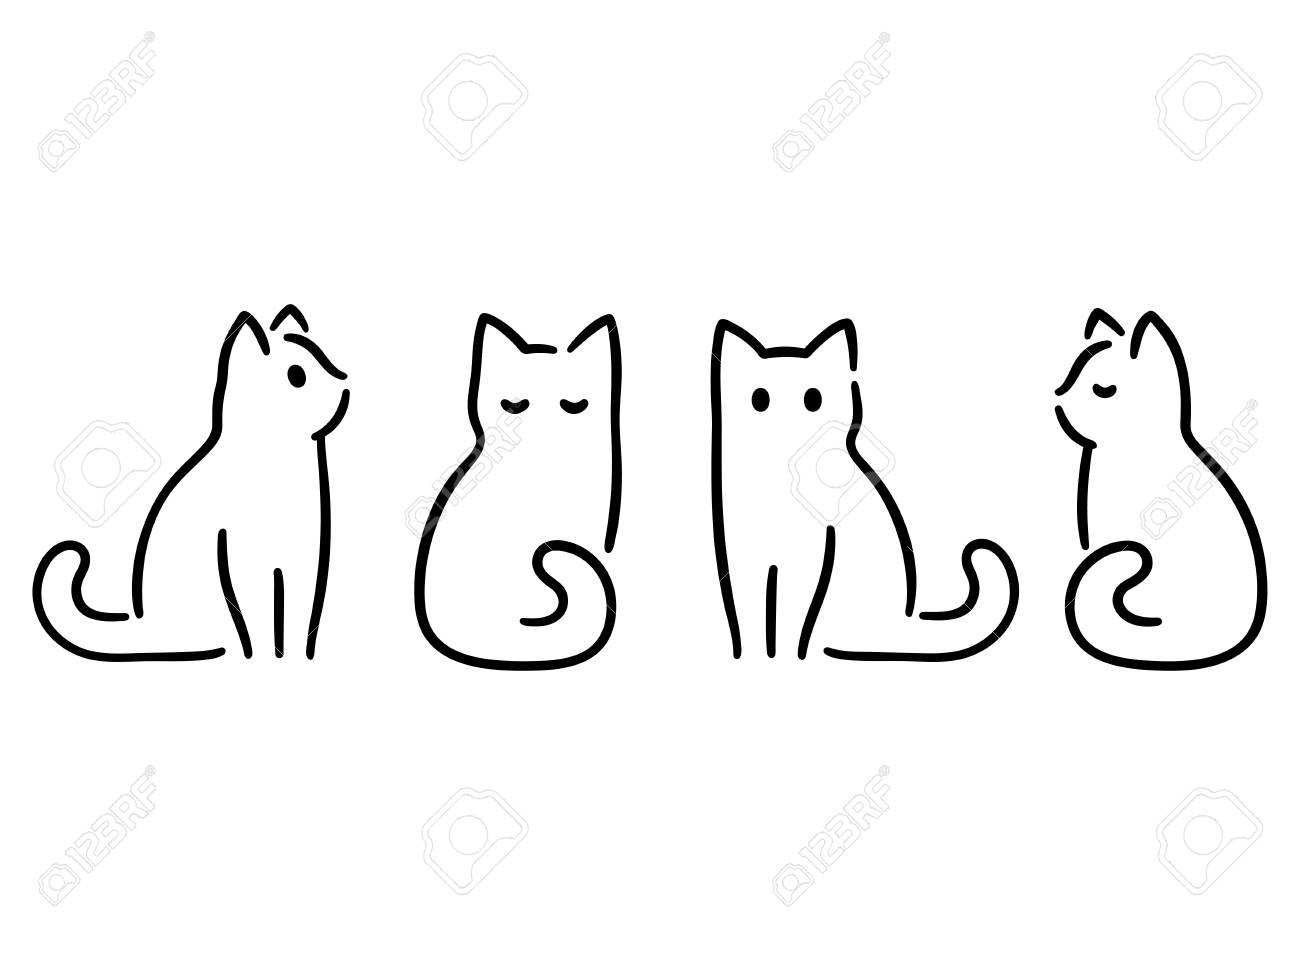 Minimalist Cats Drawing Set Cat Doodles In Abstract Hand Drawn Royalty Free Cliparts Vectors And Stock Illustration Image 95218342